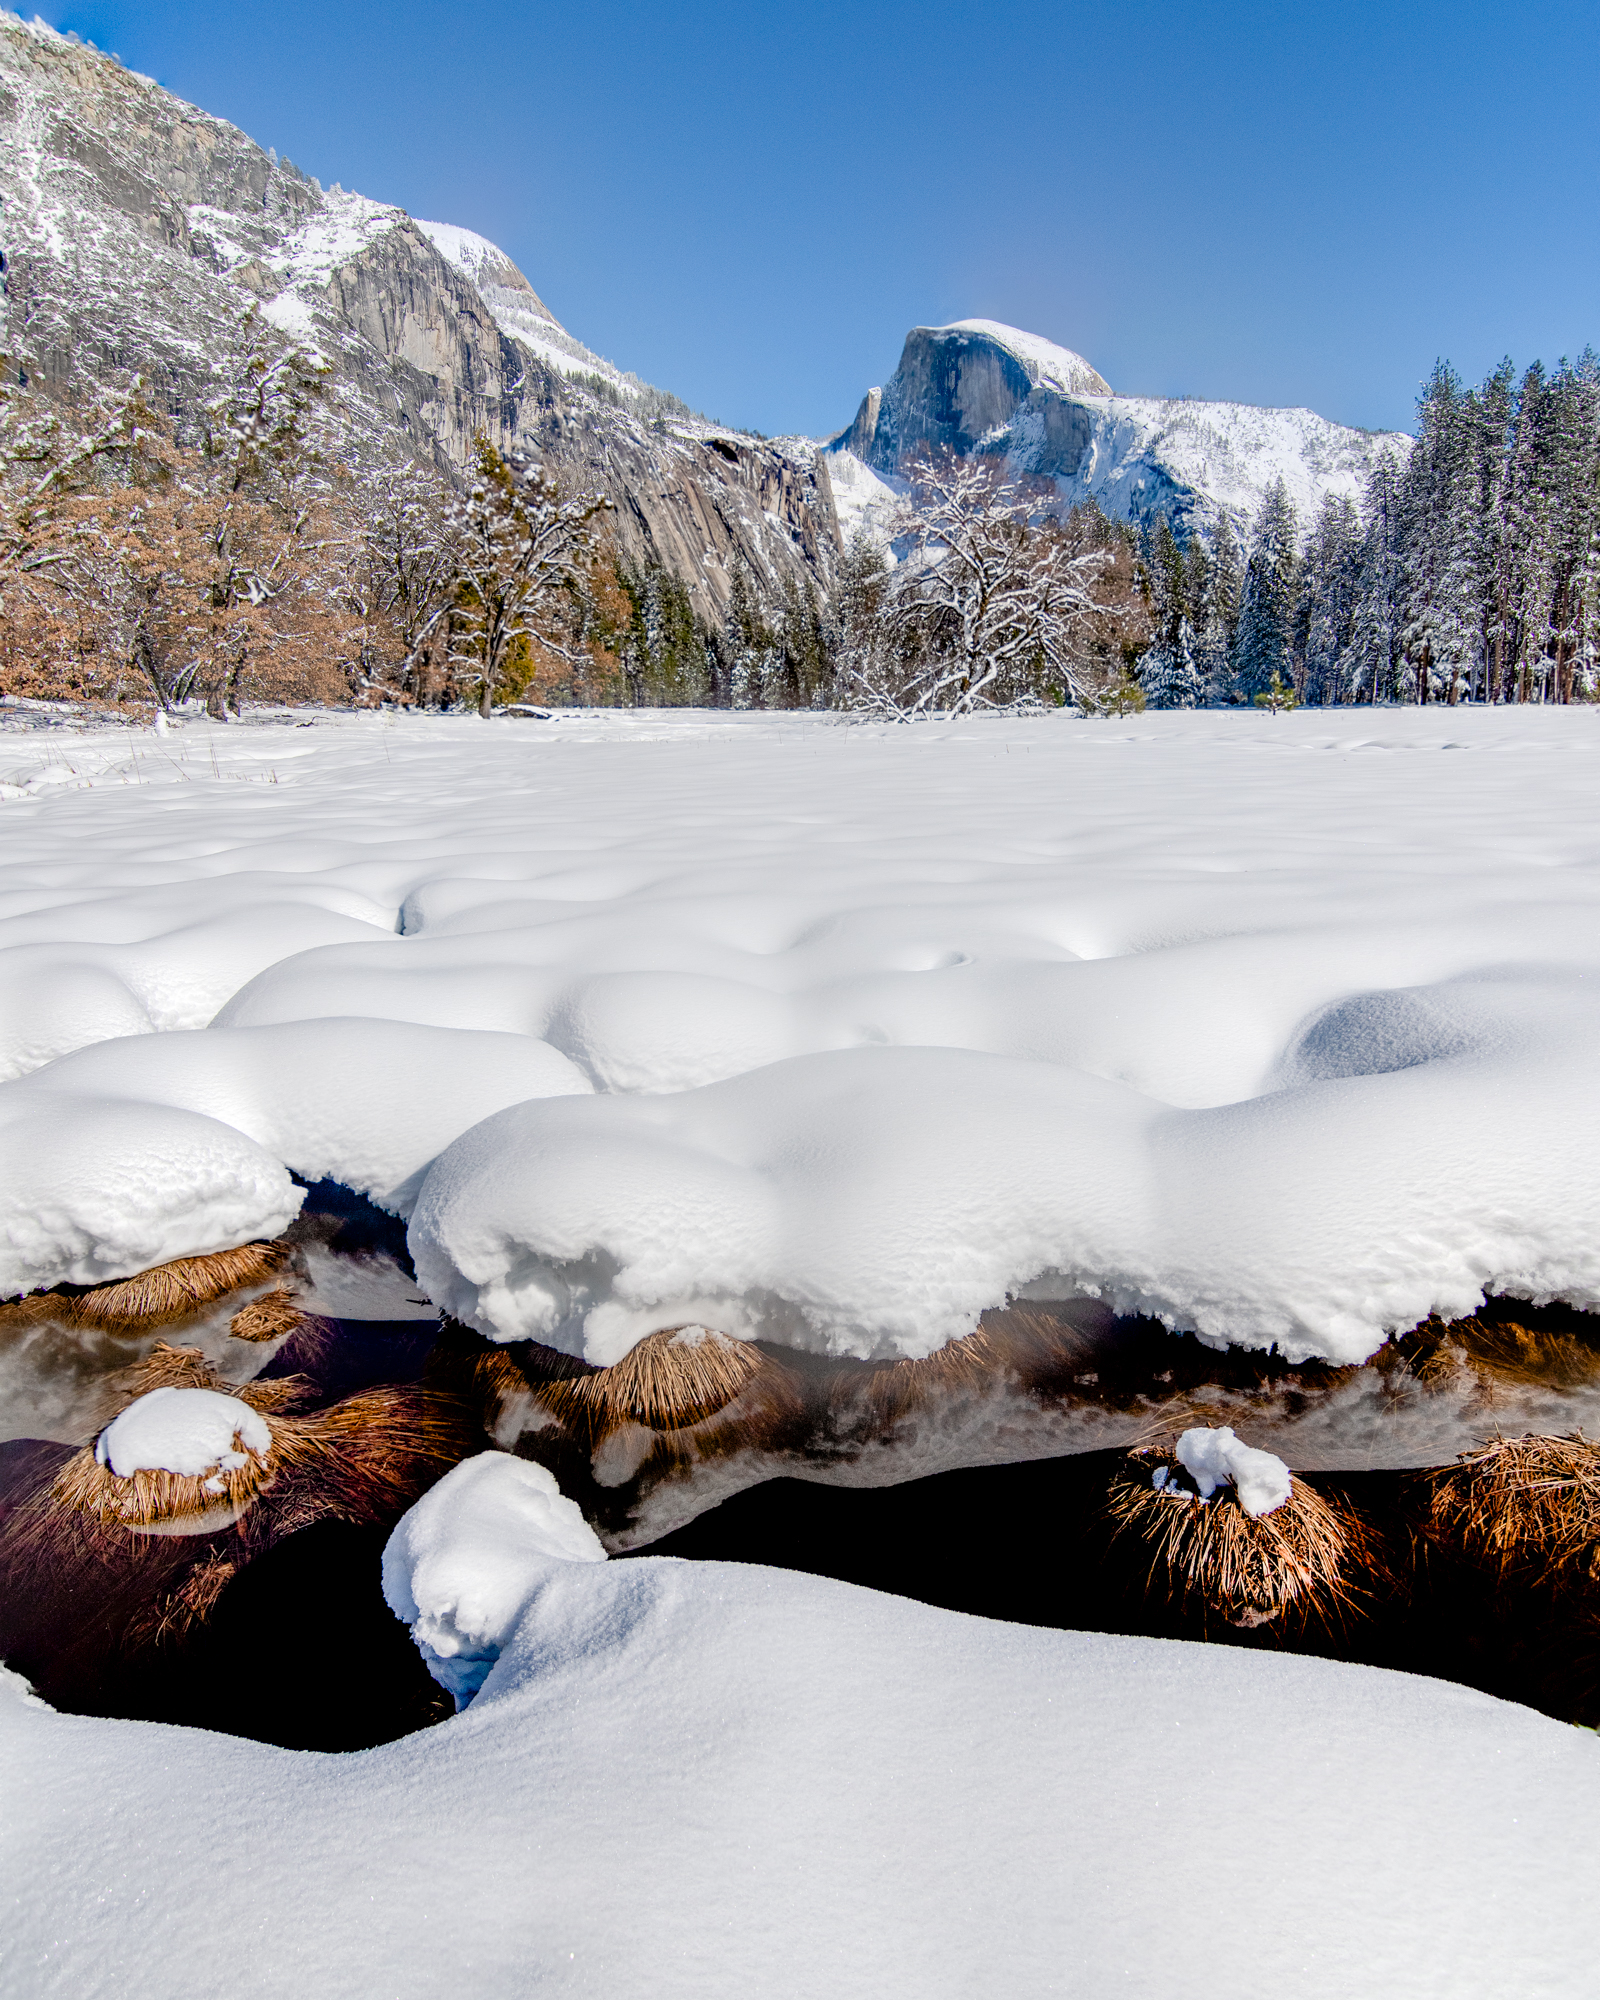 Field of Snow - Yosemite National Park